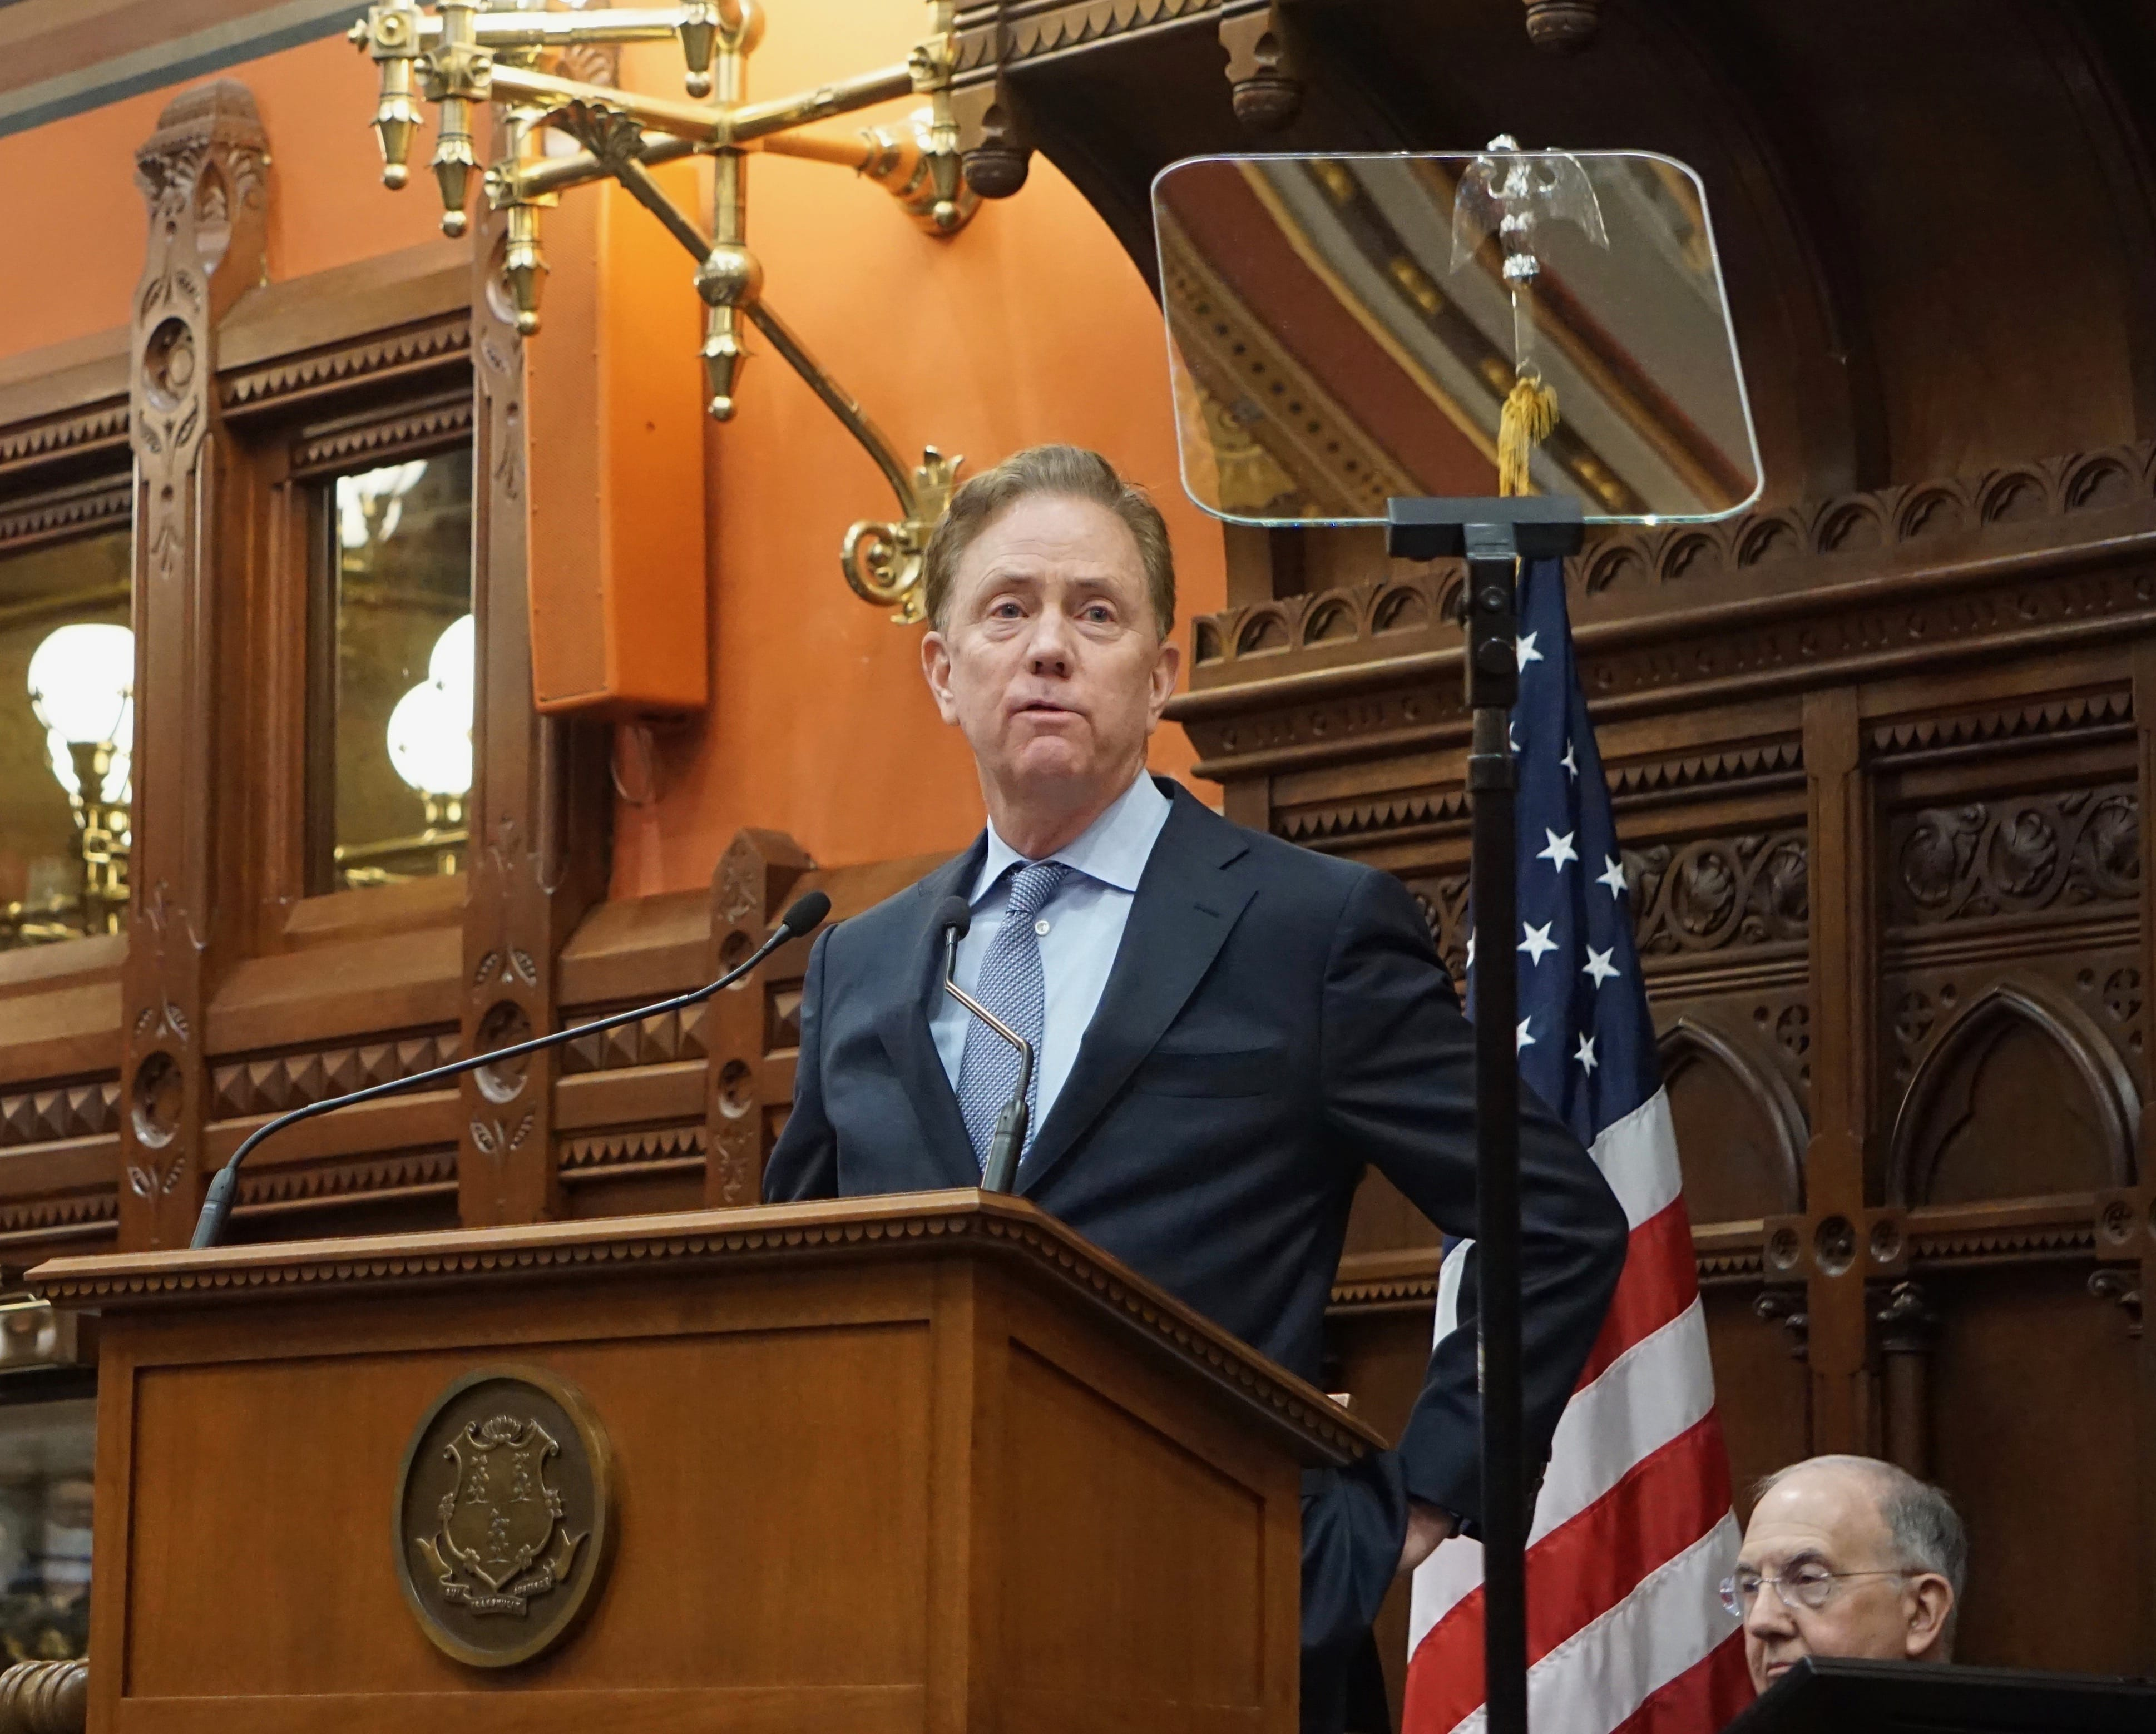 In third year, still an uncertain relationship for Lamont and legislators